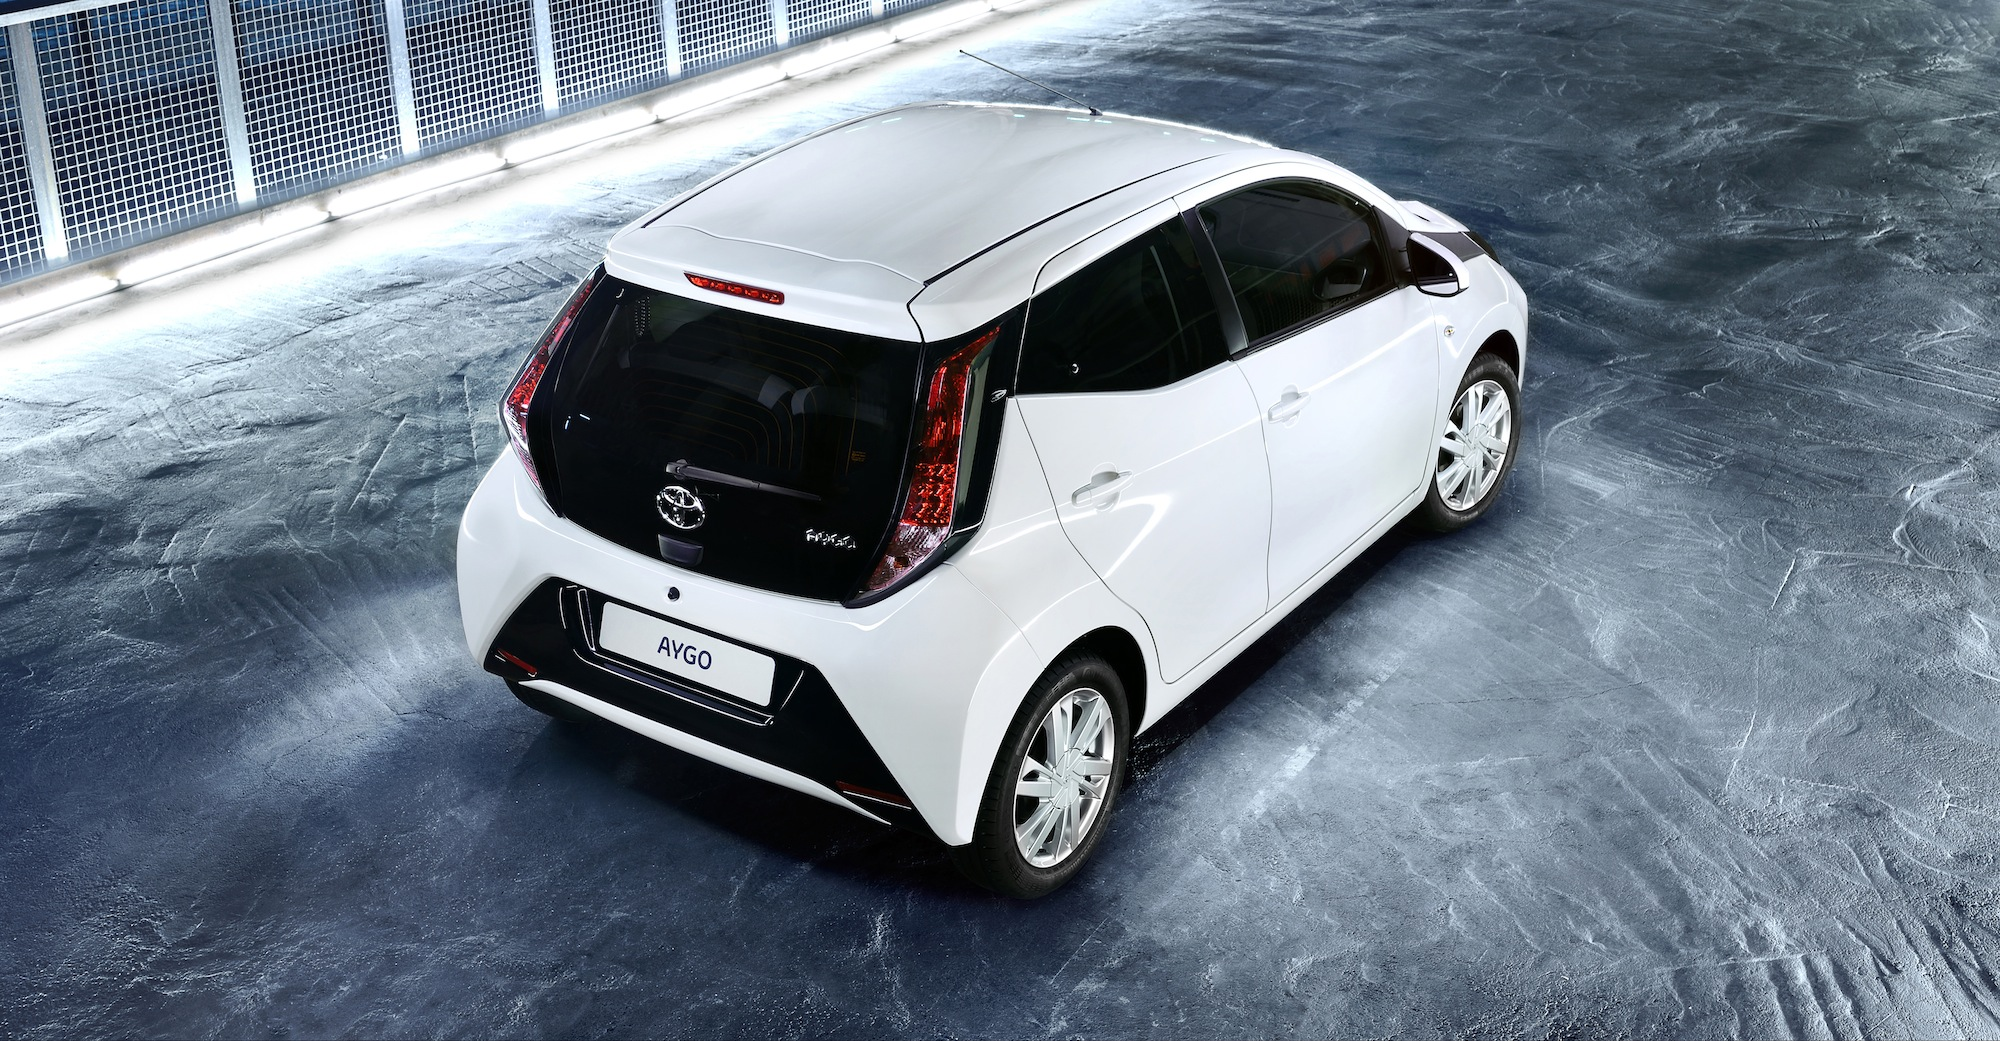 2014 Toyota Aygo Euro Hip City Hatch Unveiled Photos